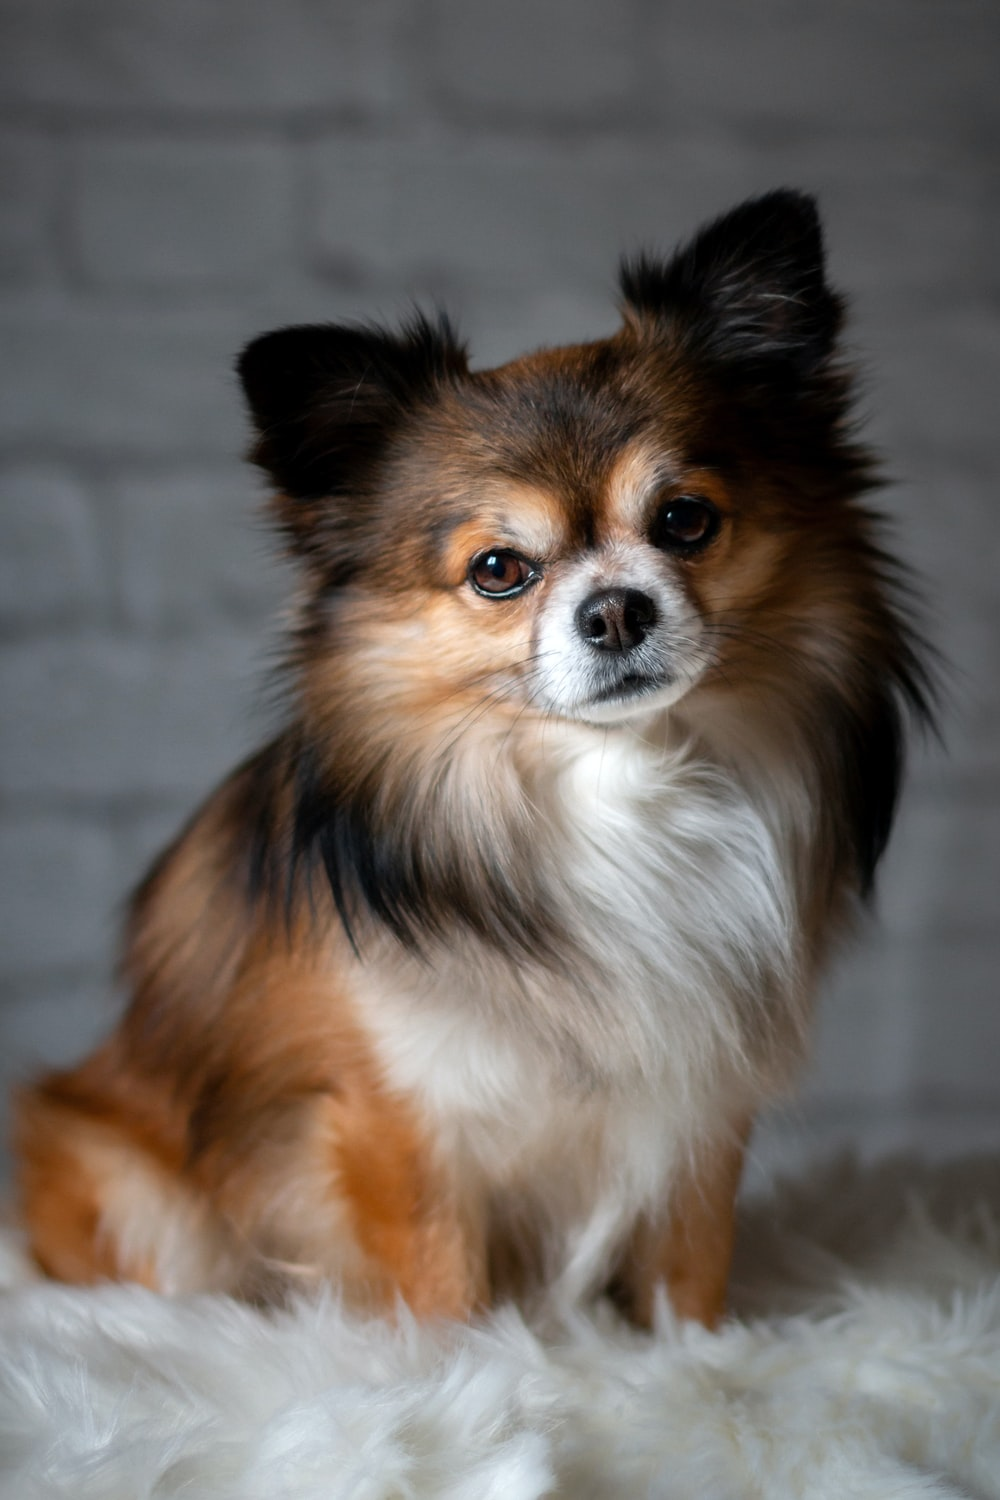 long-coated white and brown dog near wall